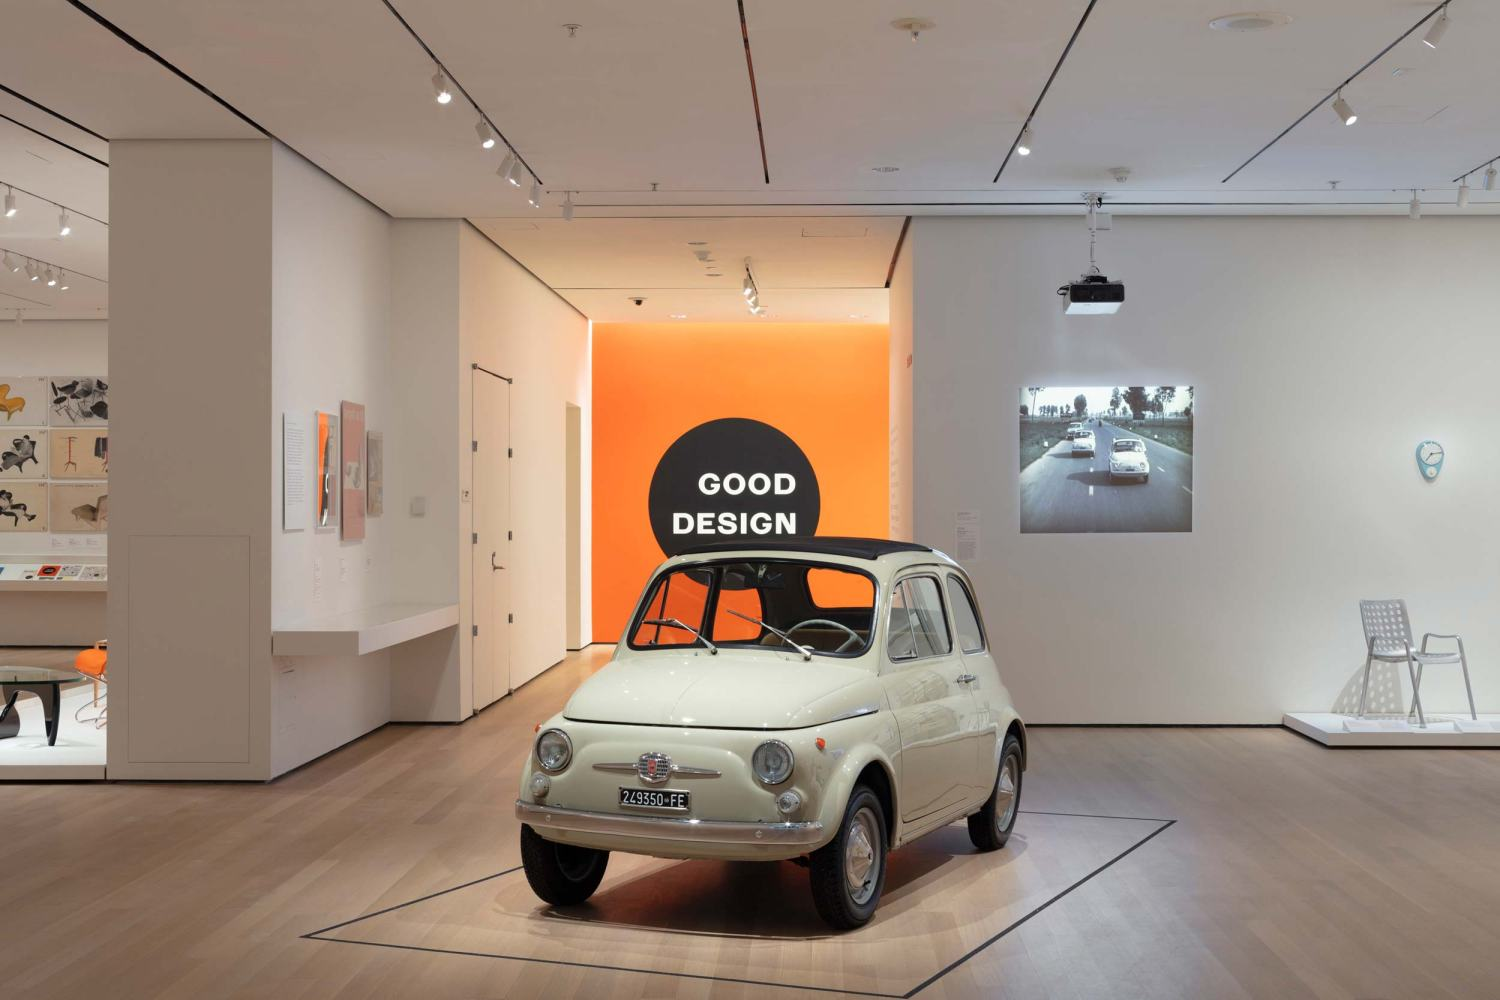 Fiat 500 display at MoMa